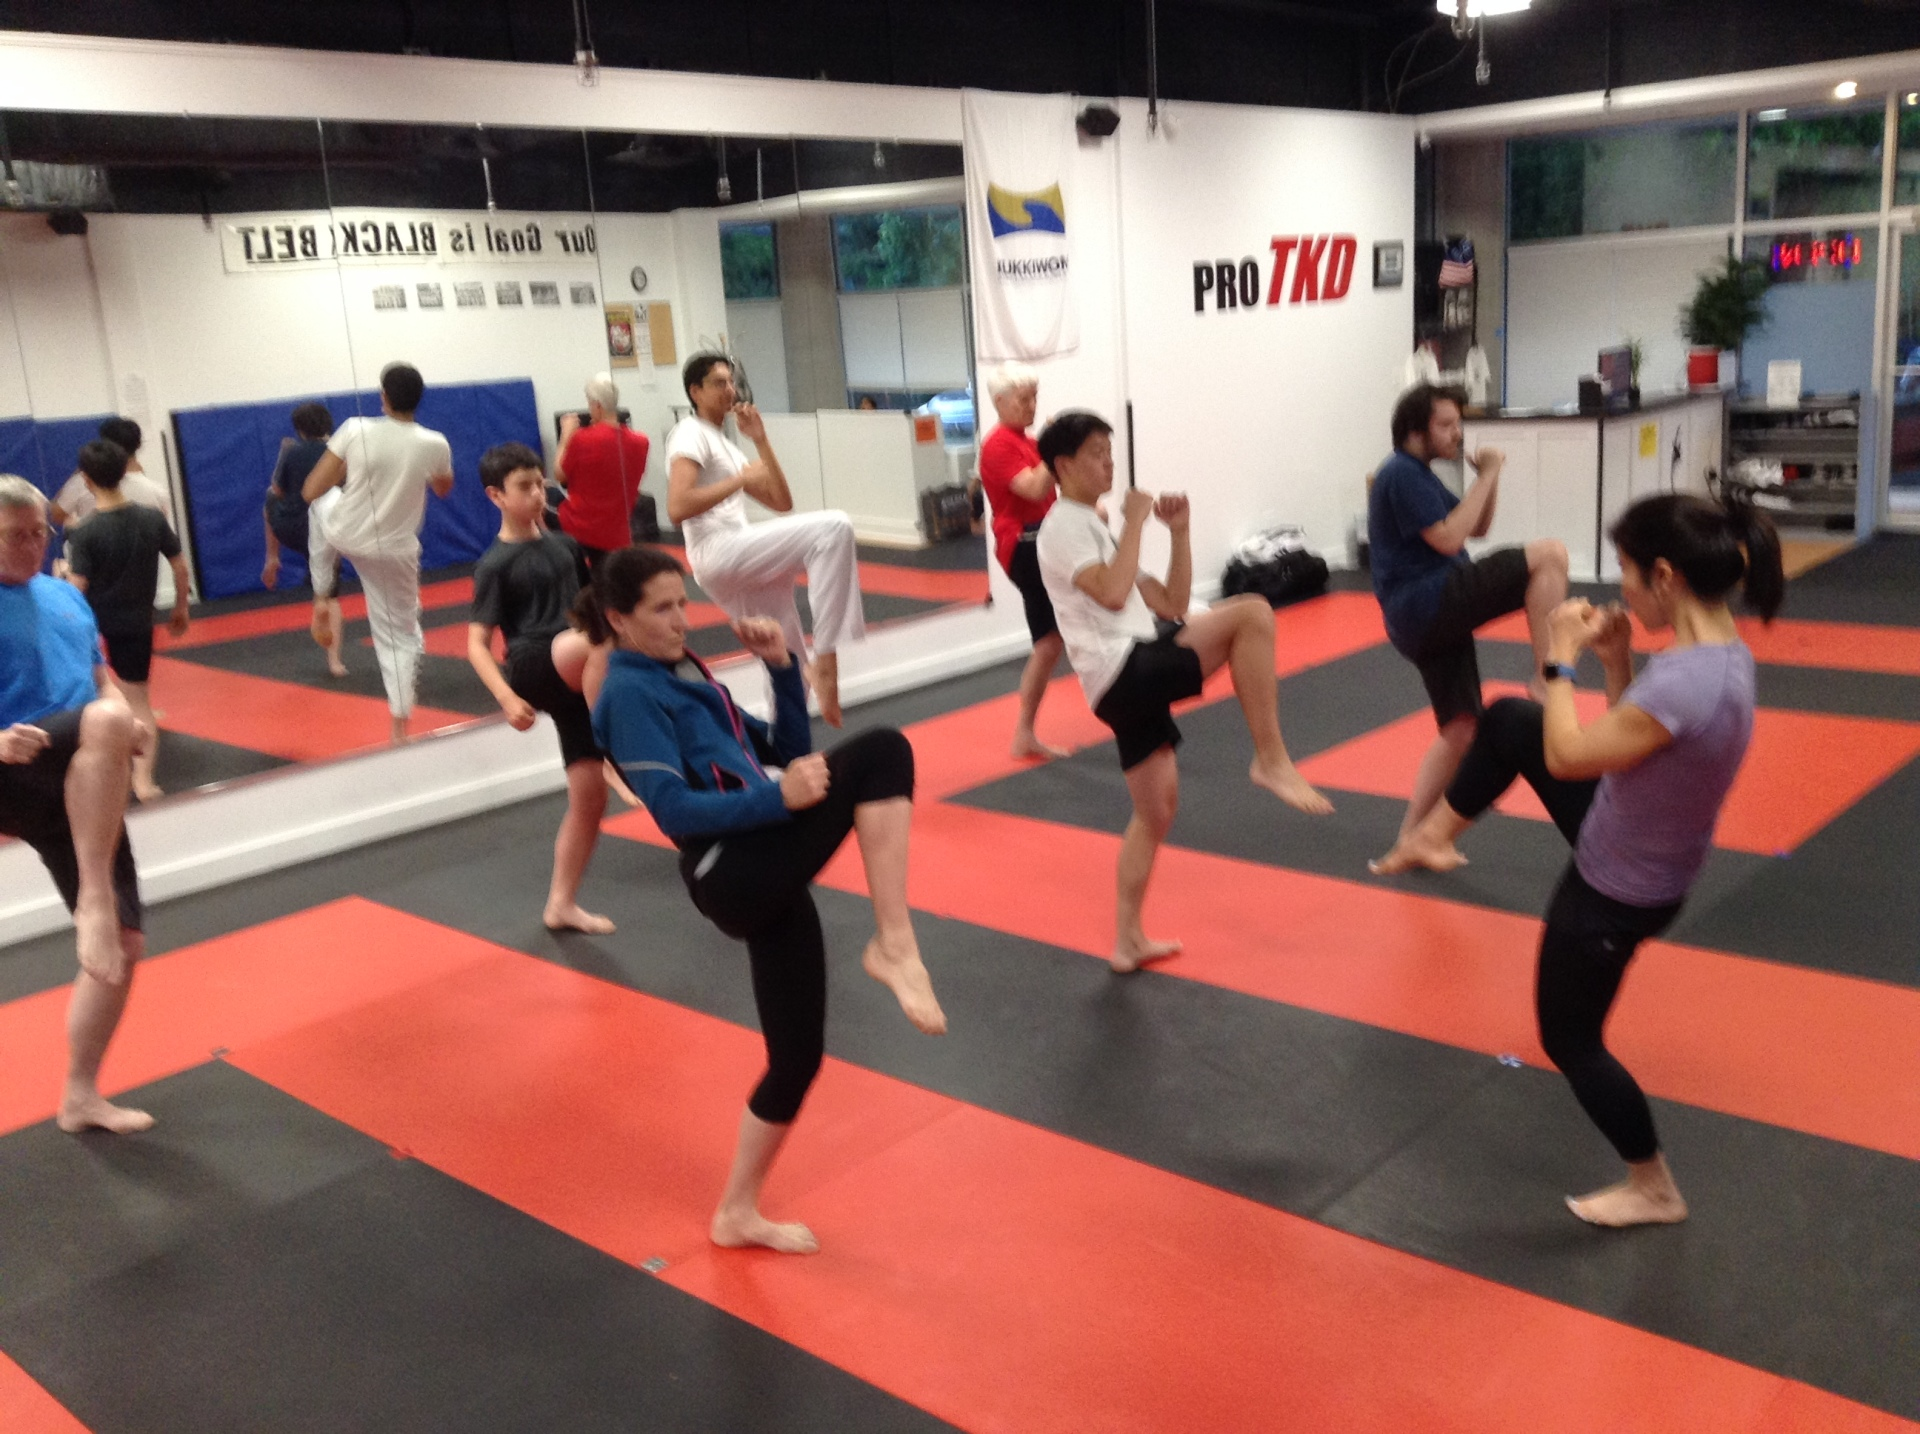 Burn Fitness - Cardio Kickboxing